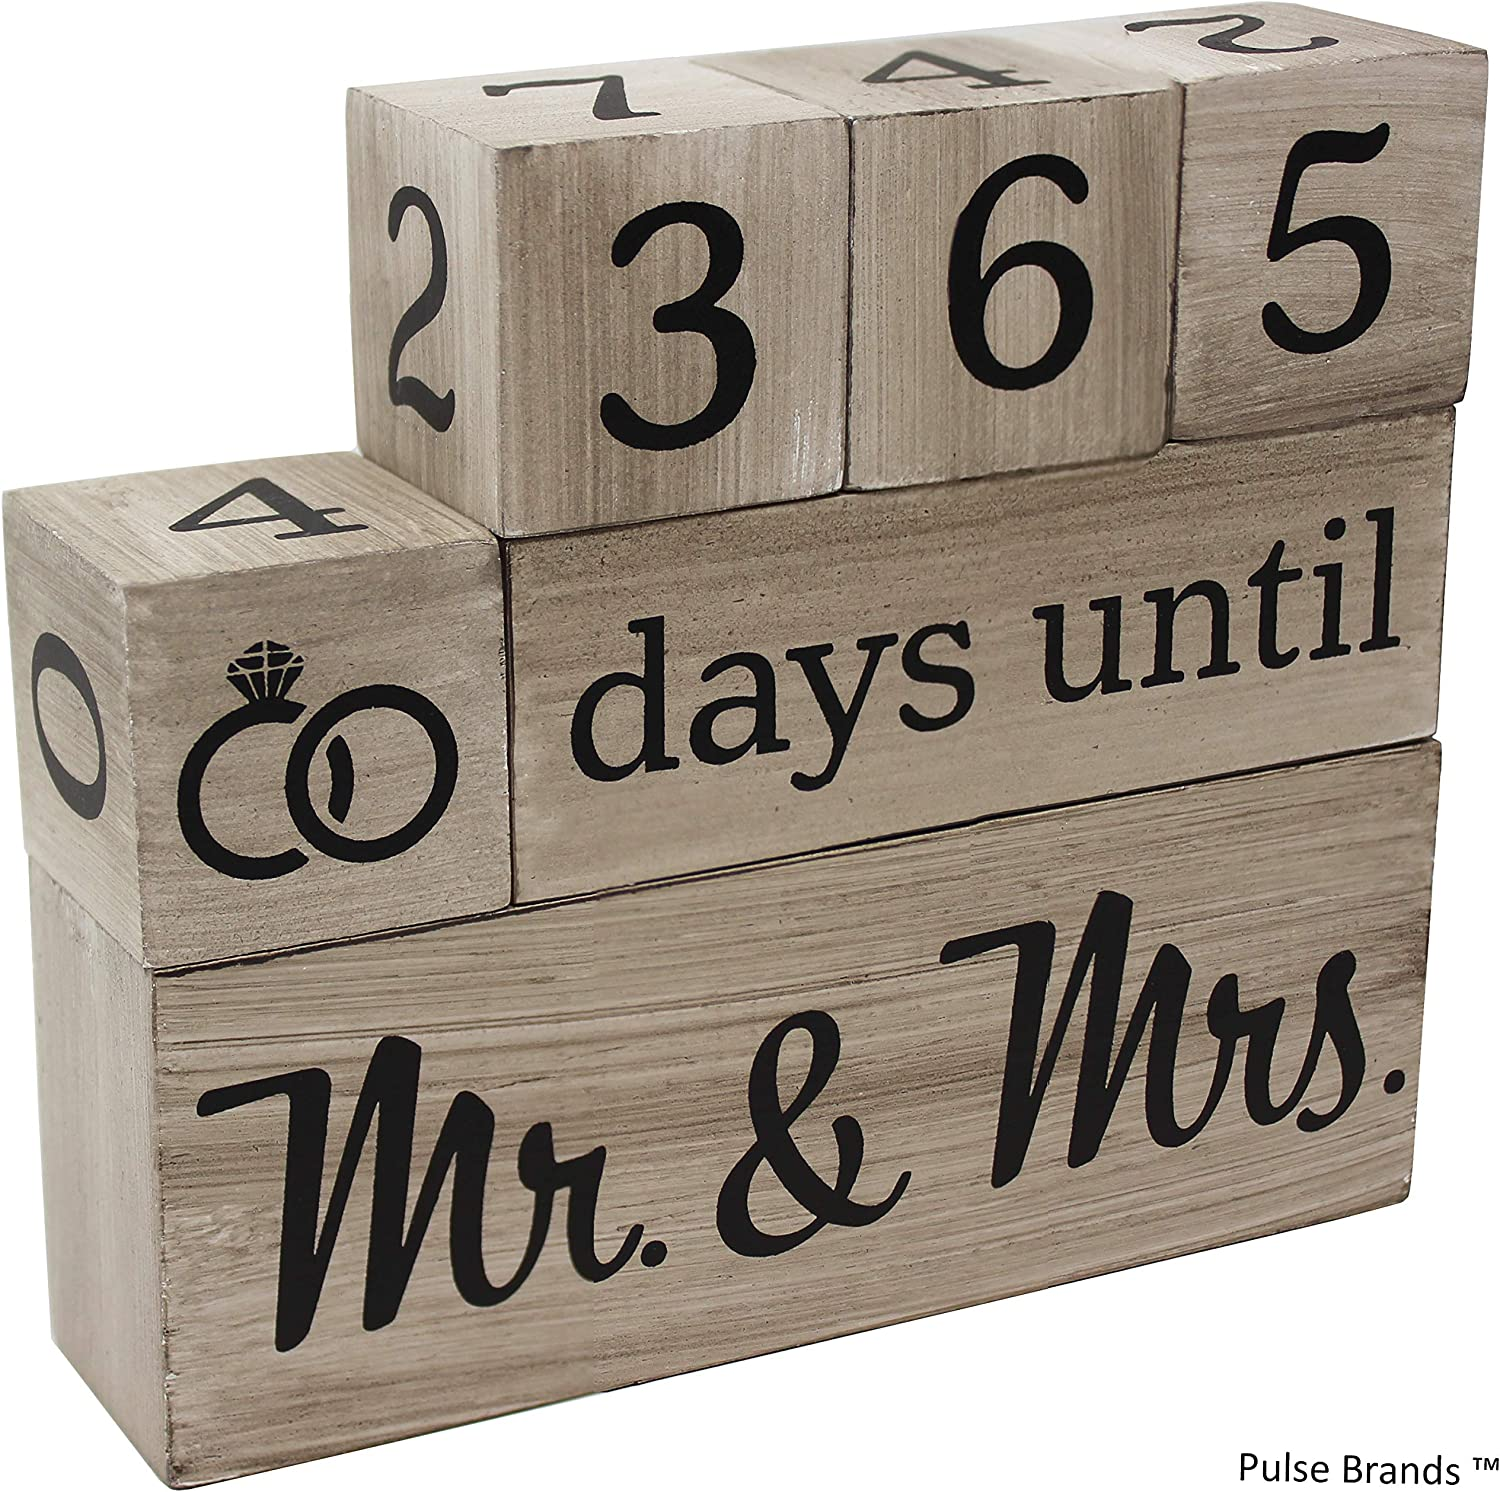 Wedding Countdown Calendar Wooden Blocks - Engagement Gifts - Bride to Be - Bridal Shower Gifts - Bride Gifts - Engagement Gifts for Couples - Engaged - Rustic Finish with Black Numbers